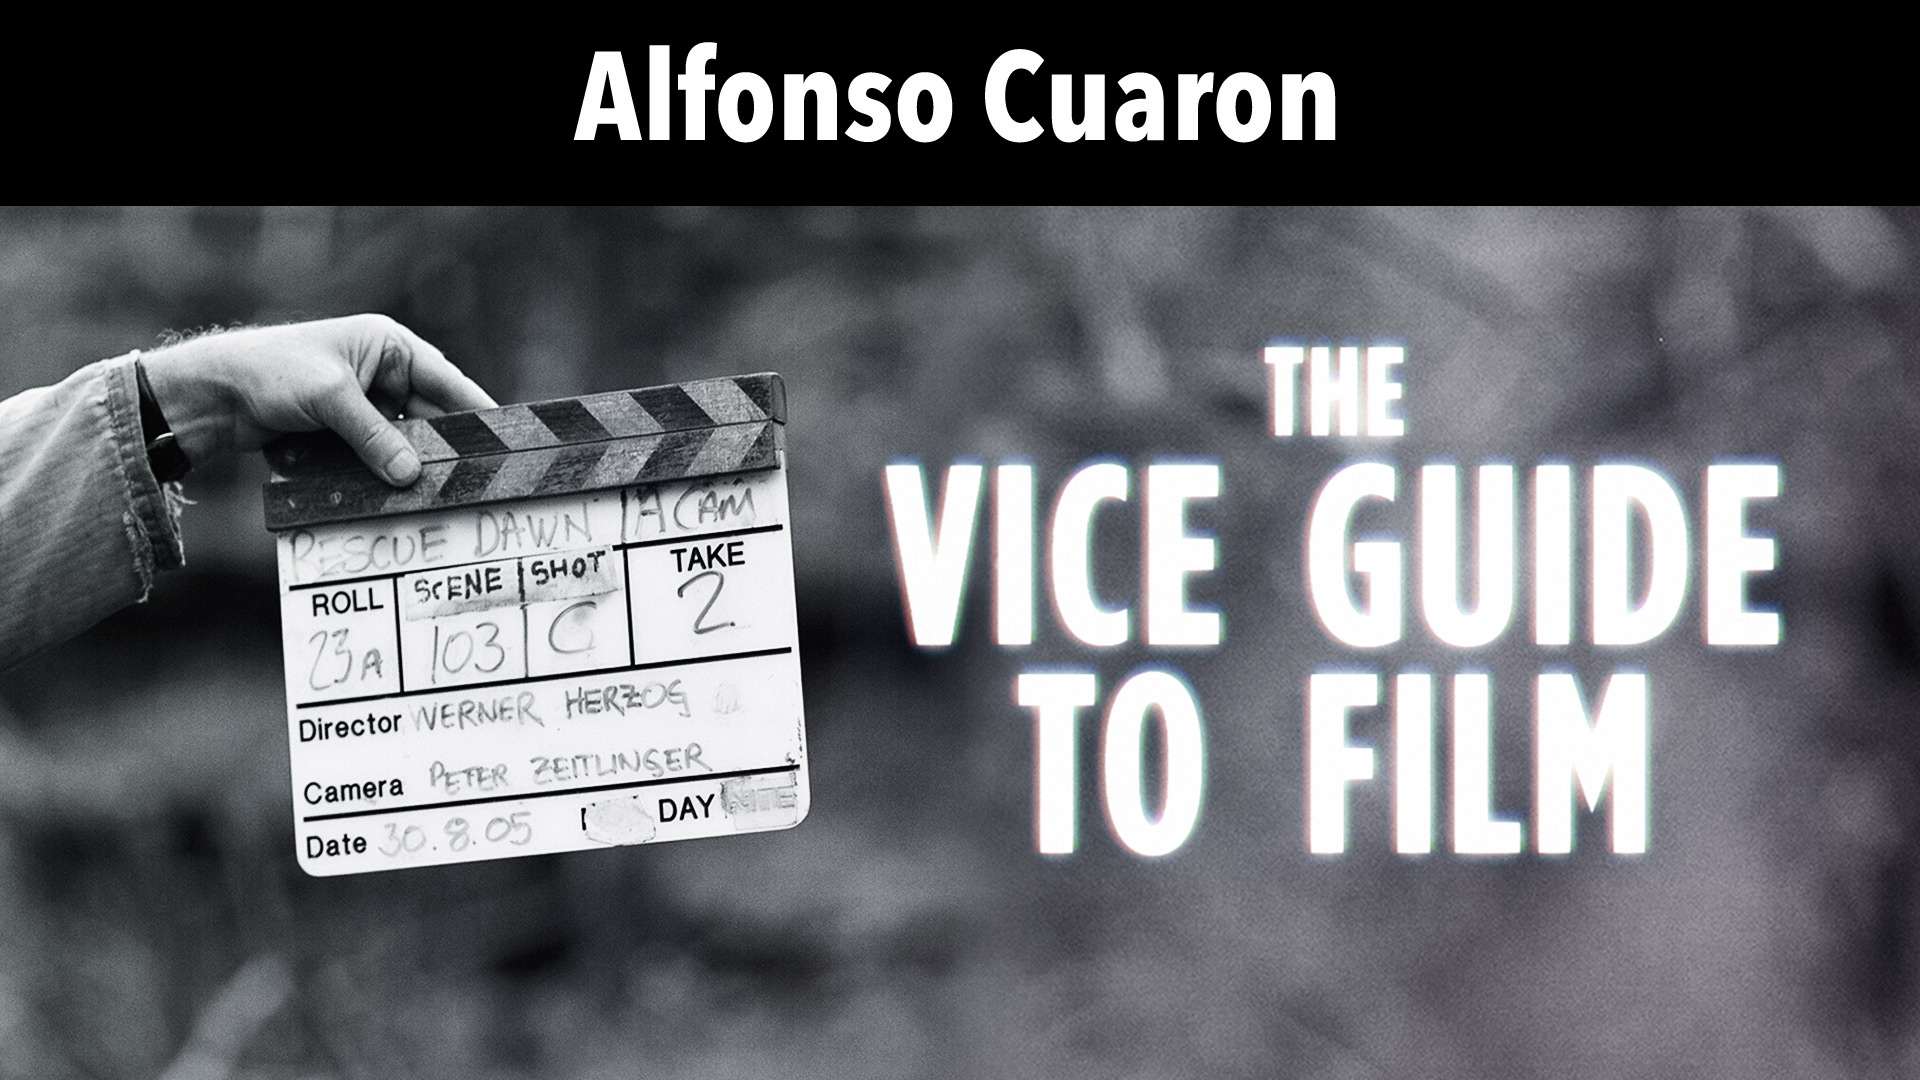 Alfonso Cuaron: Vice Guide To Film